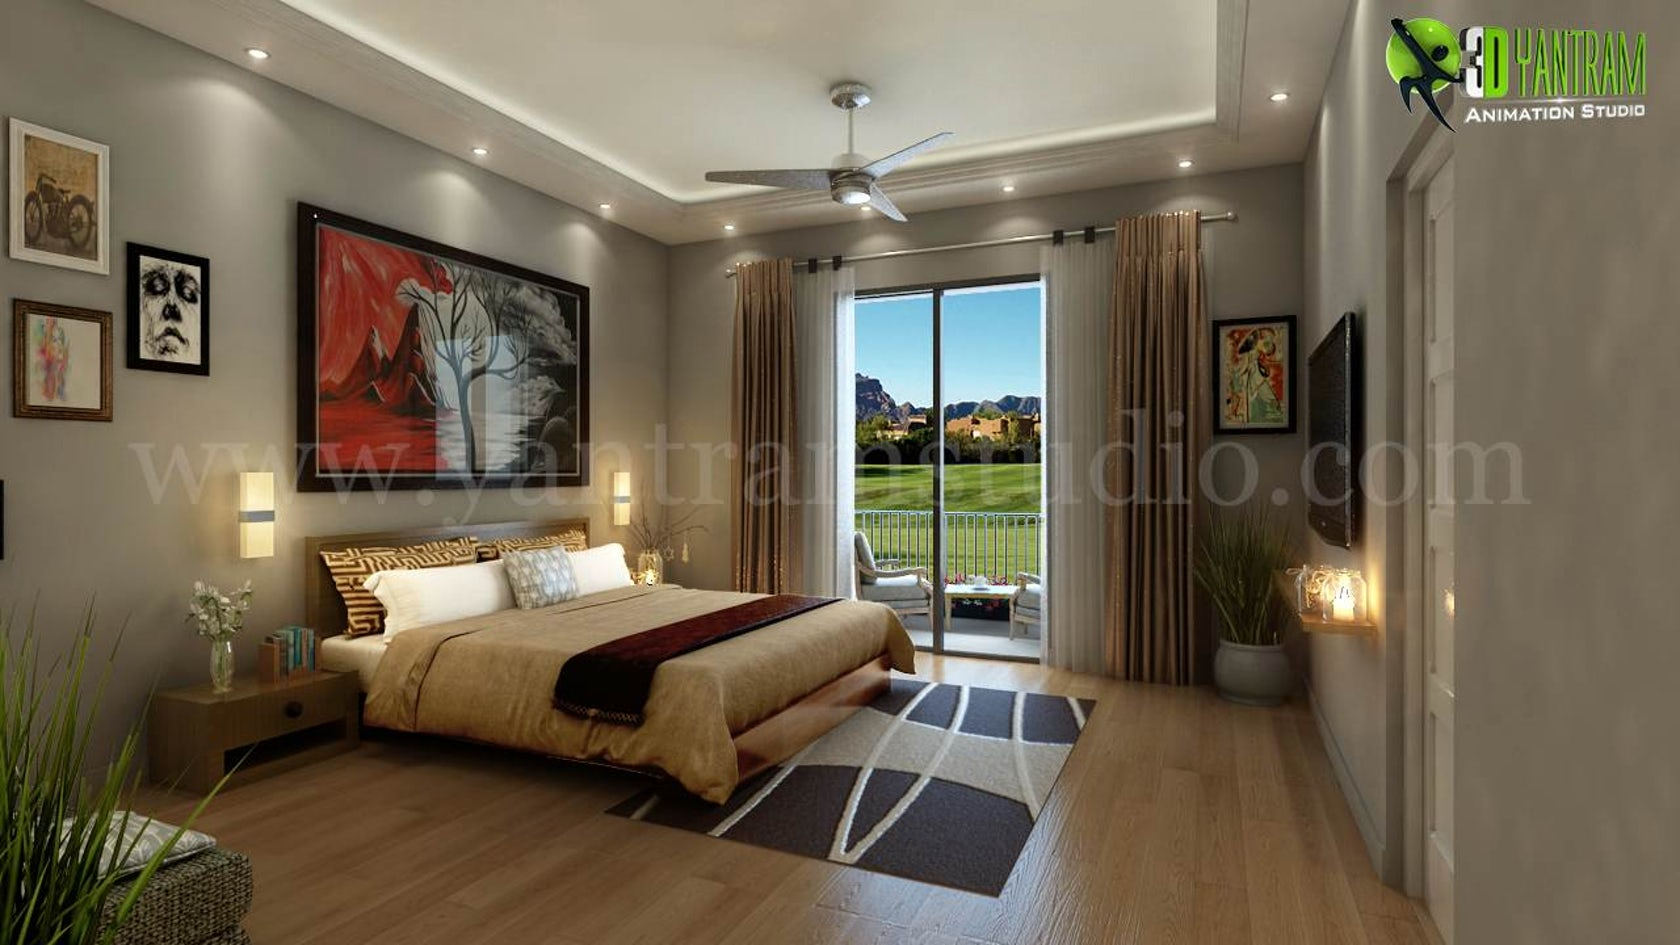 For Relaxing 3d Modern Bedroom Design View By Interior Design Firms Architizer